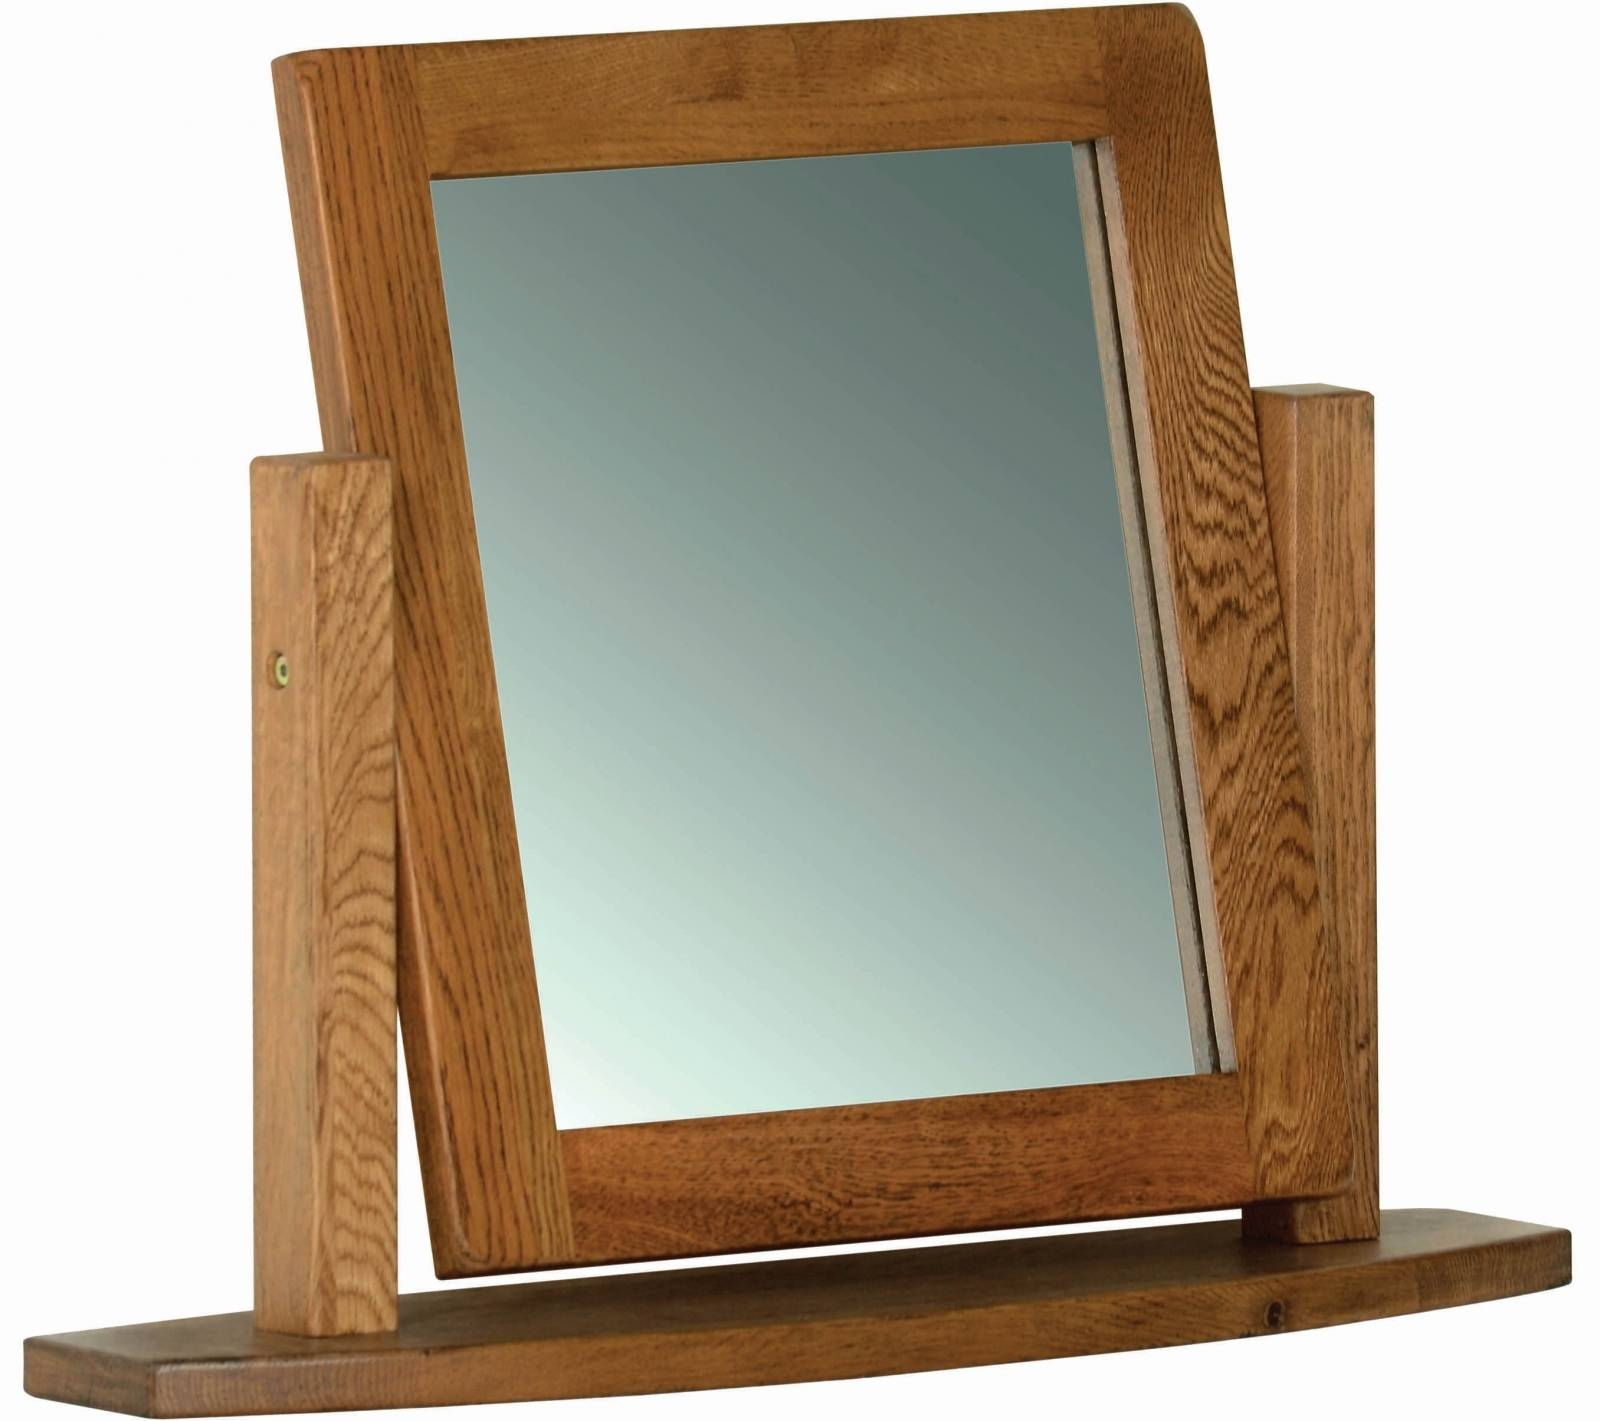 Oak Dressing Table Mirror - Oak - Mirrors - Pine Shop Bury regarding Rustic Oak Mirrors (Image 10 of 25)